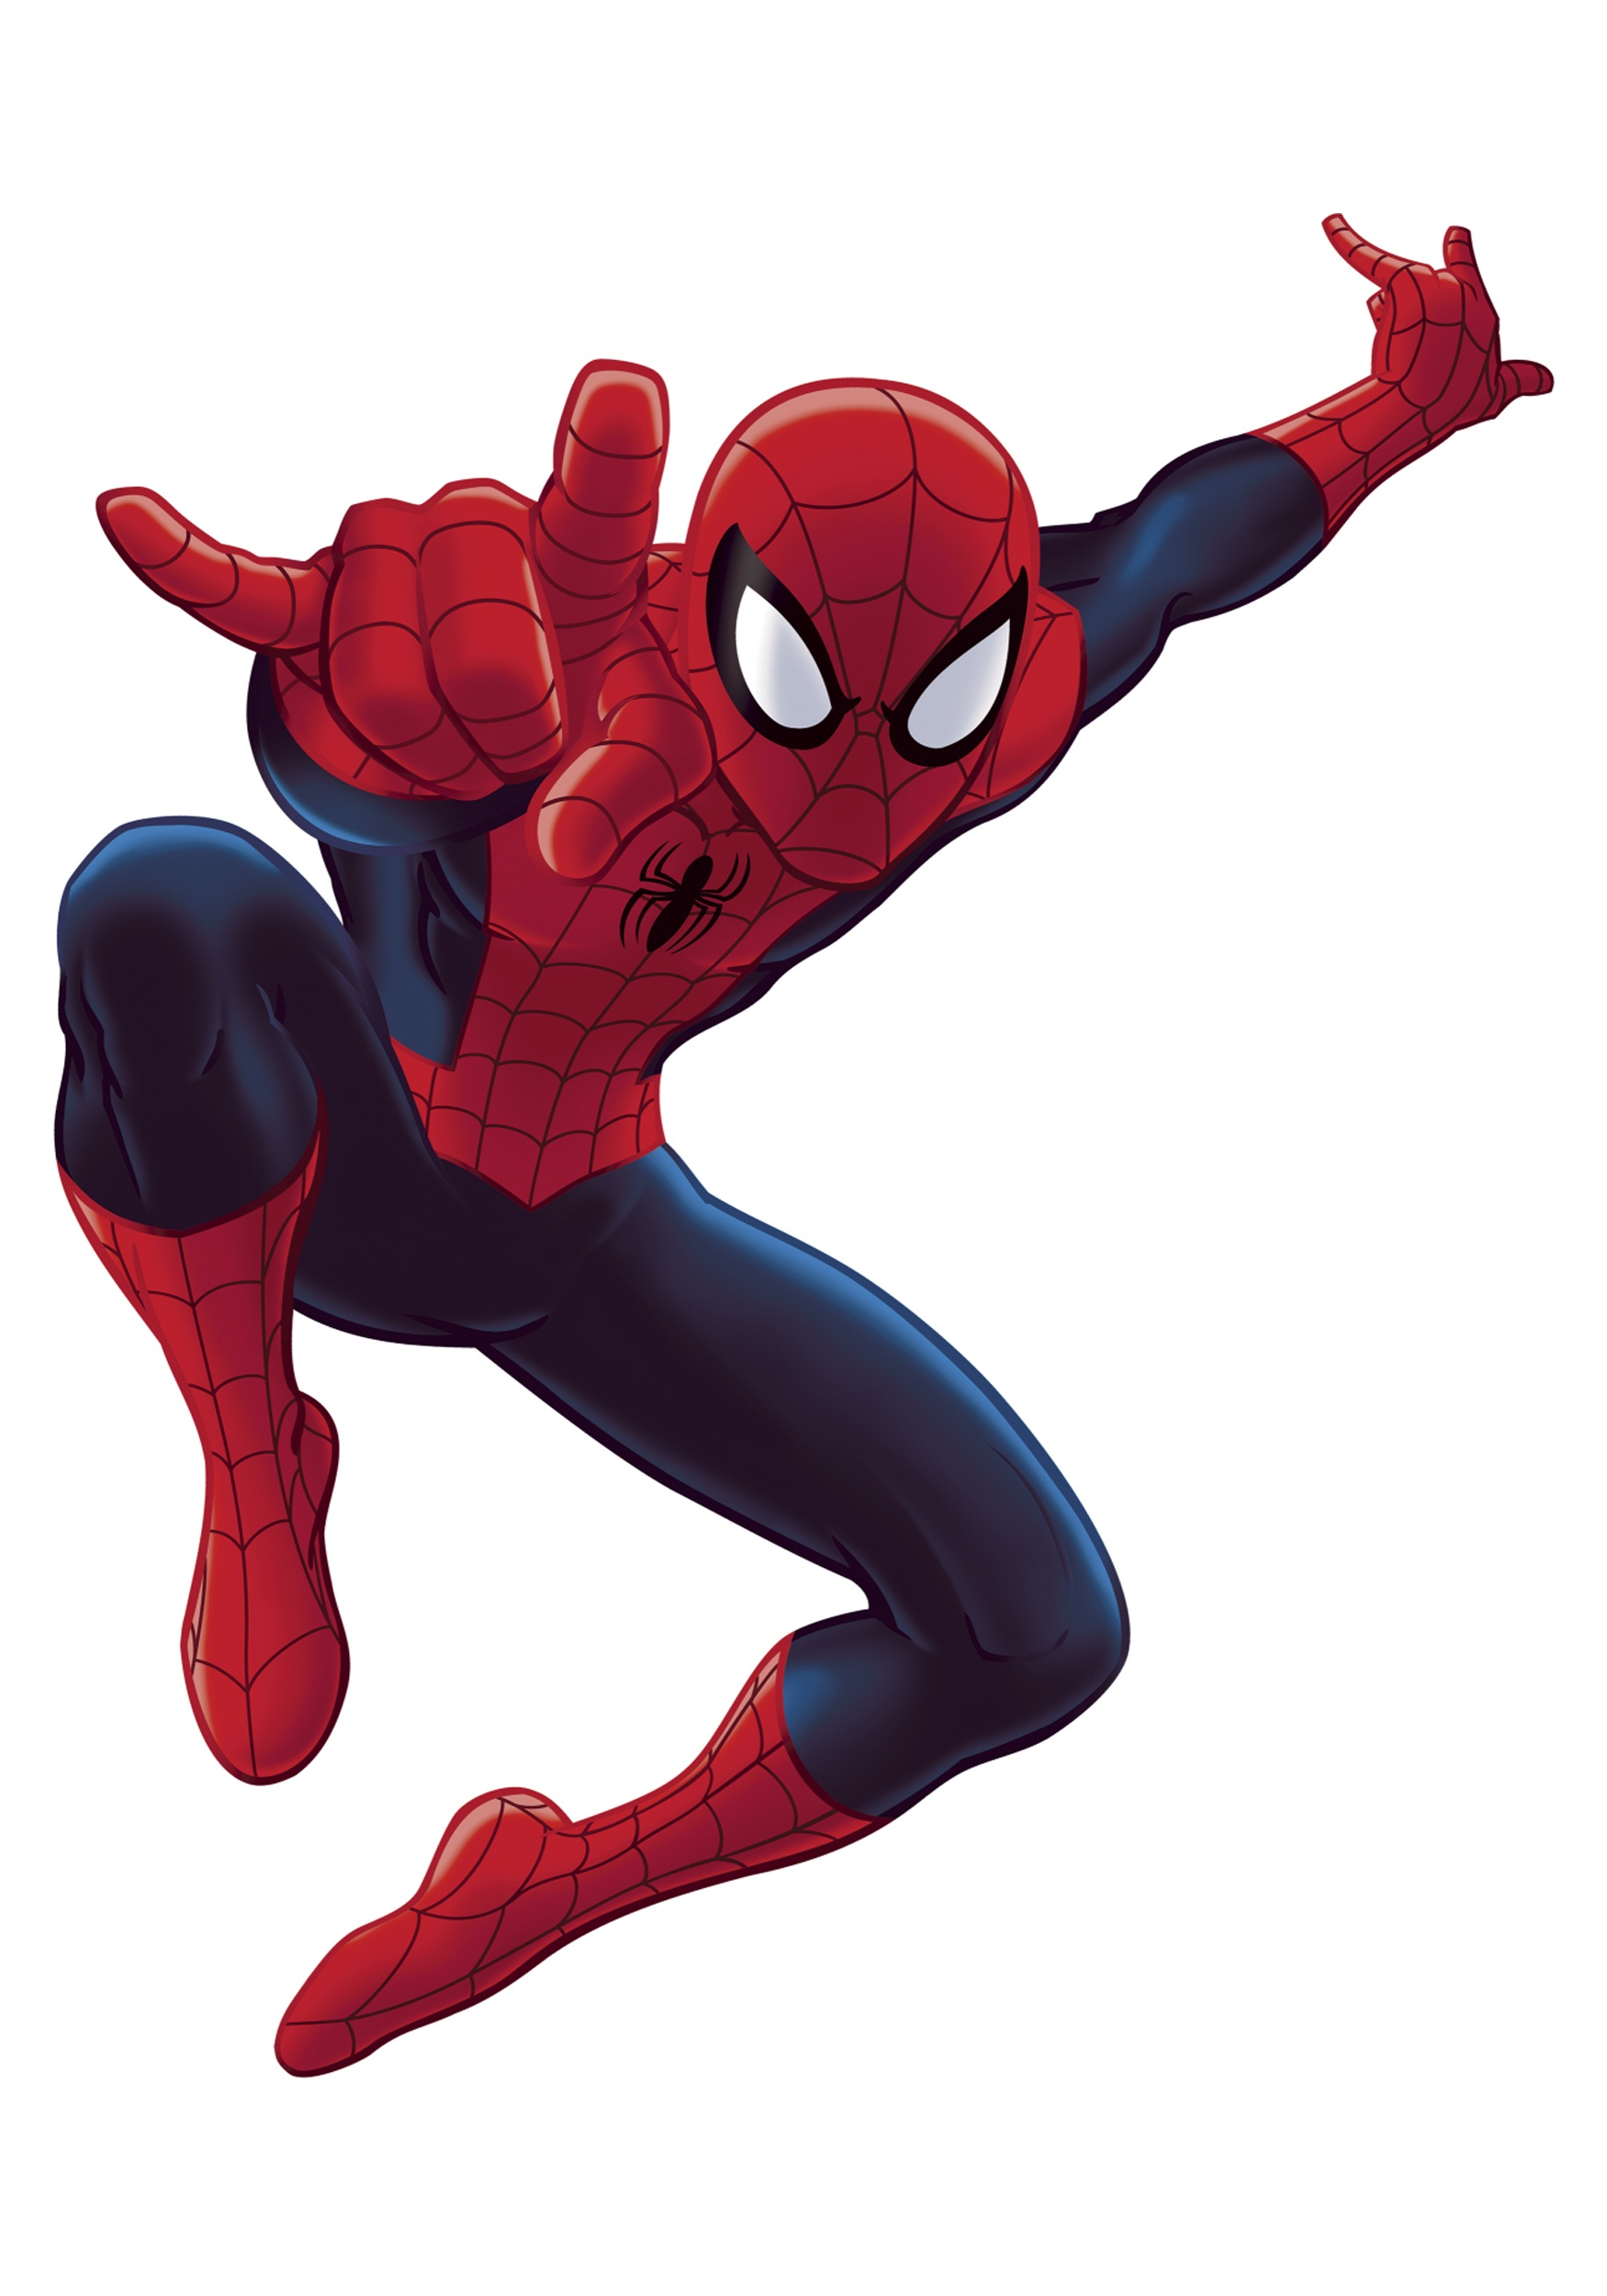 1750x2500 Free Spiderman Clipart Image 3 2